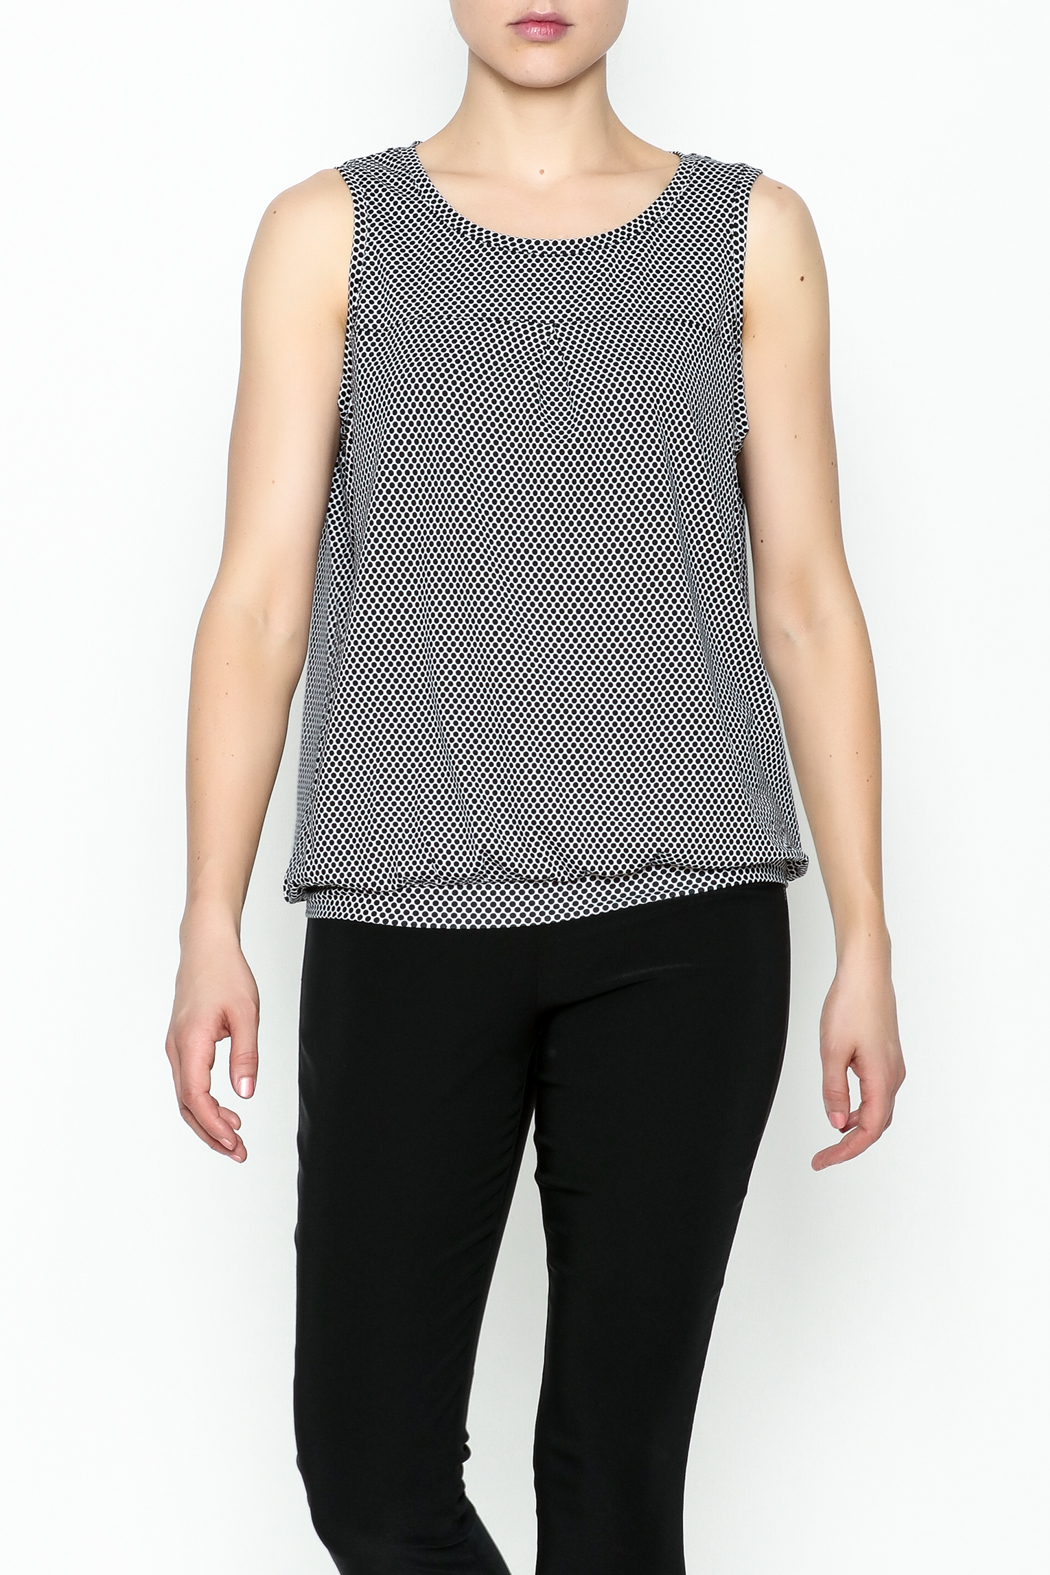 Yest Sleeveless Banded Top - Main Image